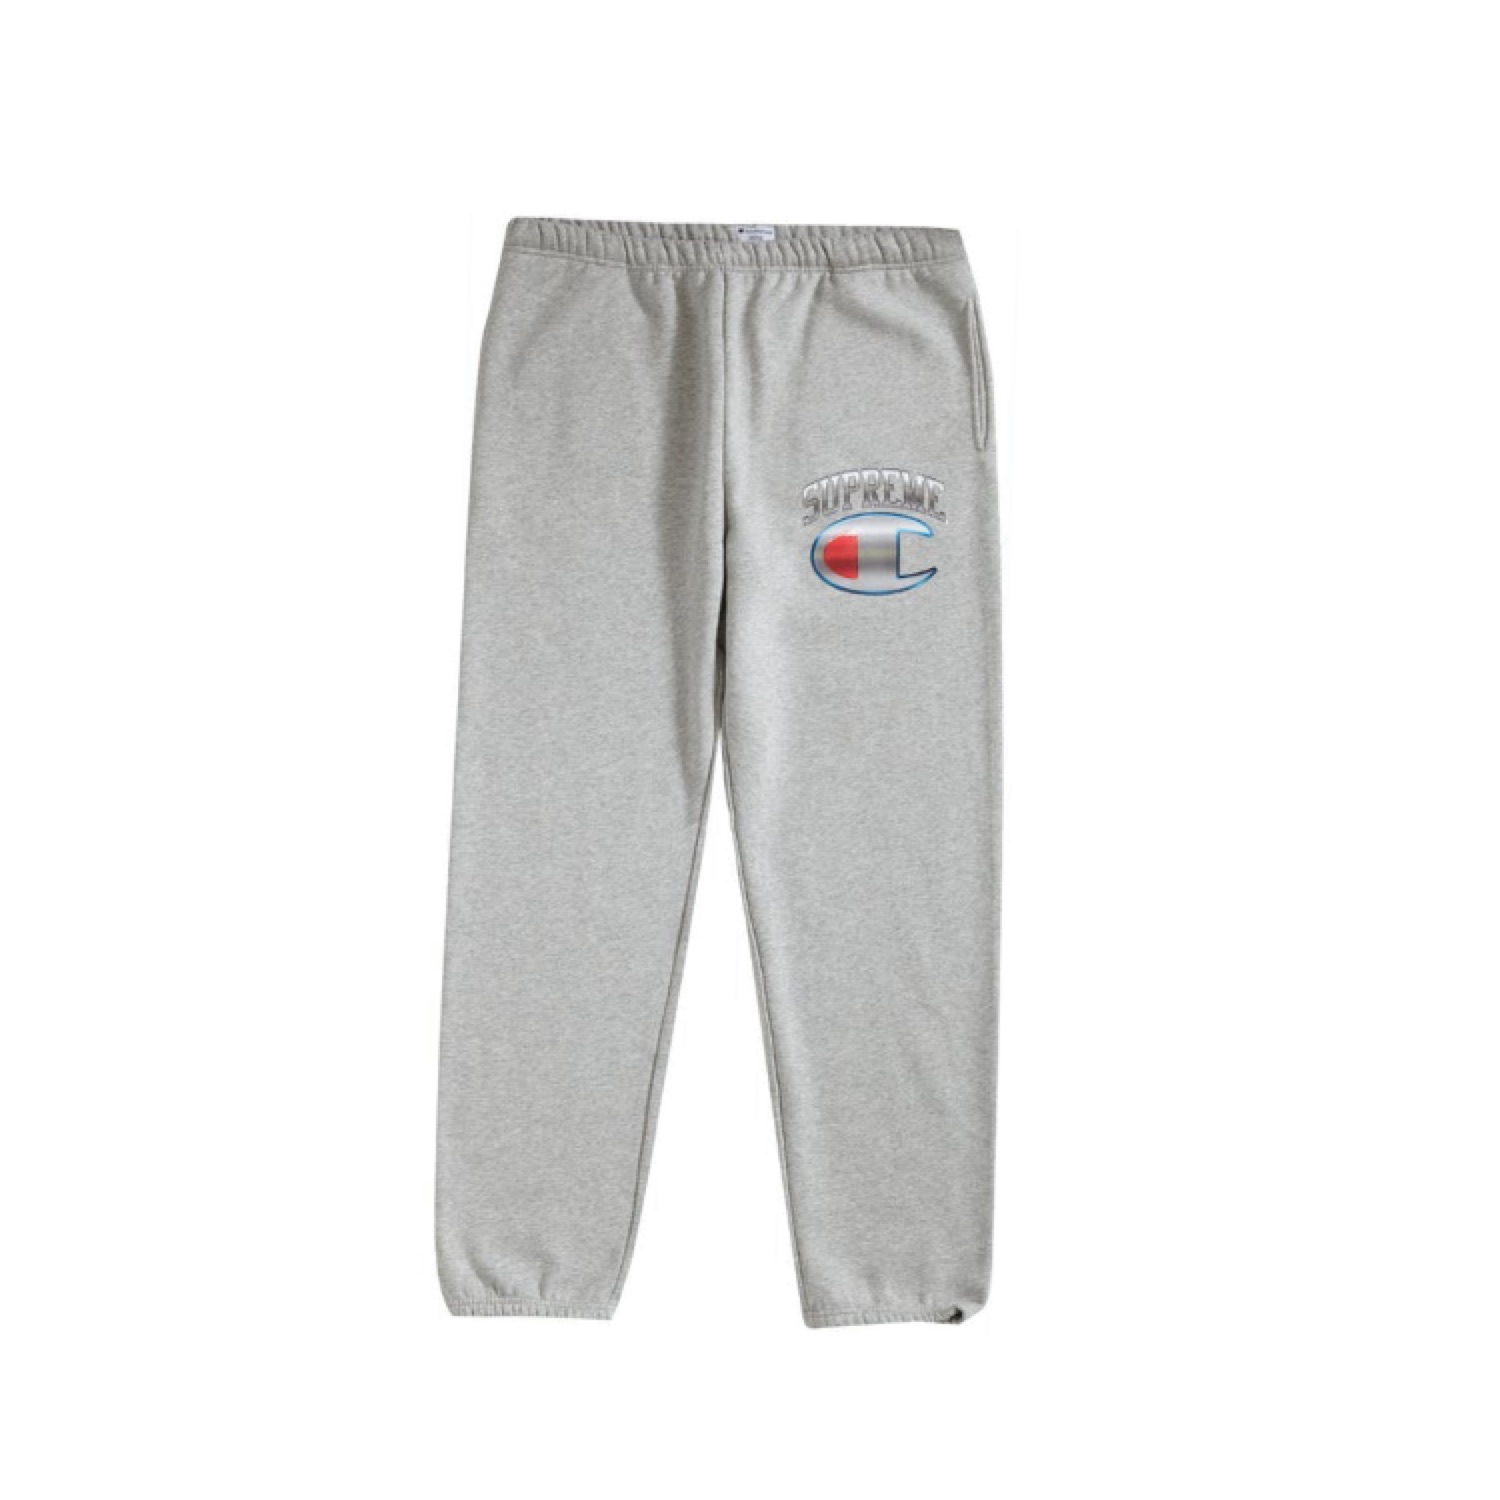 Supreme Champion Sweatpant Ash Grey